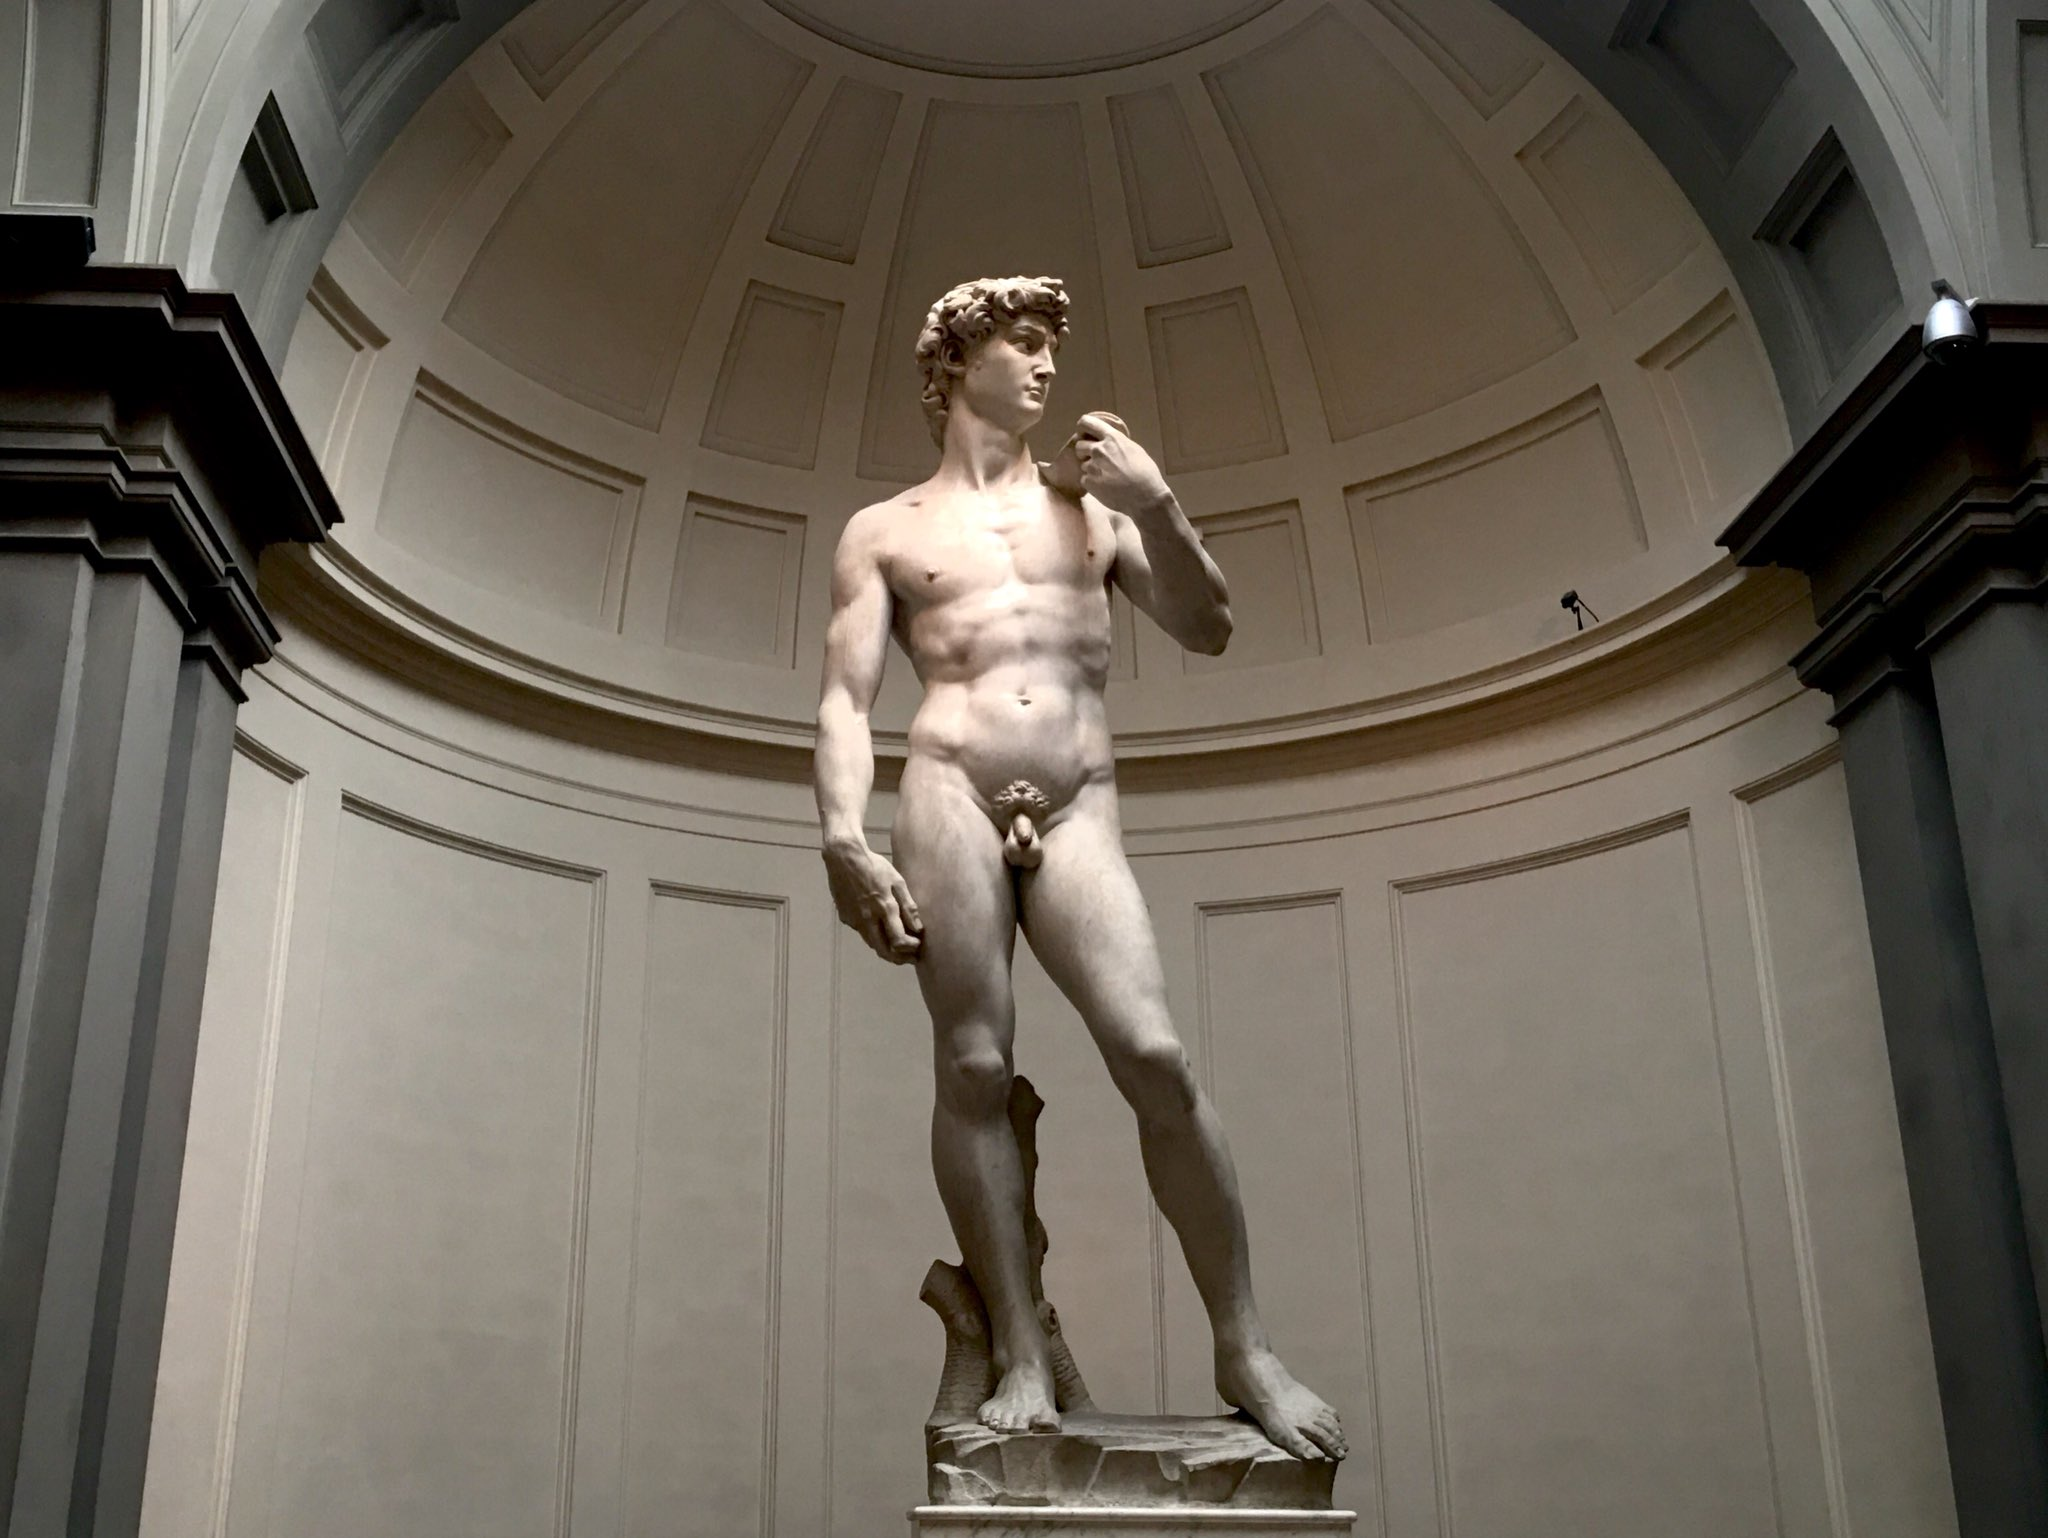 Odyssey Italy 2018, David is a masterpiece Renaissance sculpture created in marble 1501-04 by Italian artist Michelangelo. David is a 5.17-meter (17.0 ft) marble statue represents the Biblical hero David, a favoured subject in the art of Florence. https://t.co/scjxgzjf16